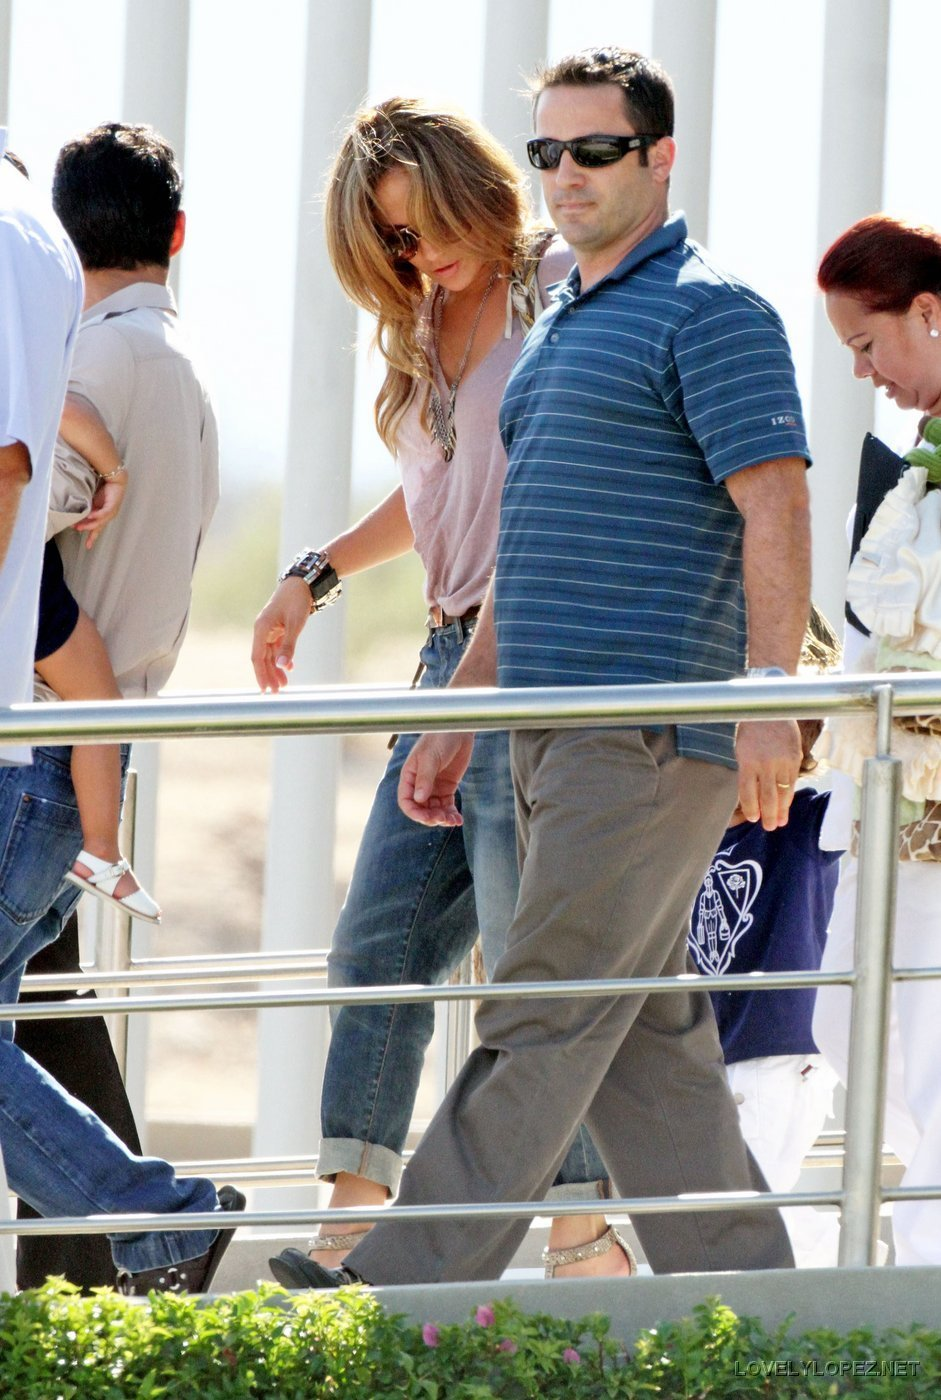 Jennifer arriving in Mexico with her family 7/22/10